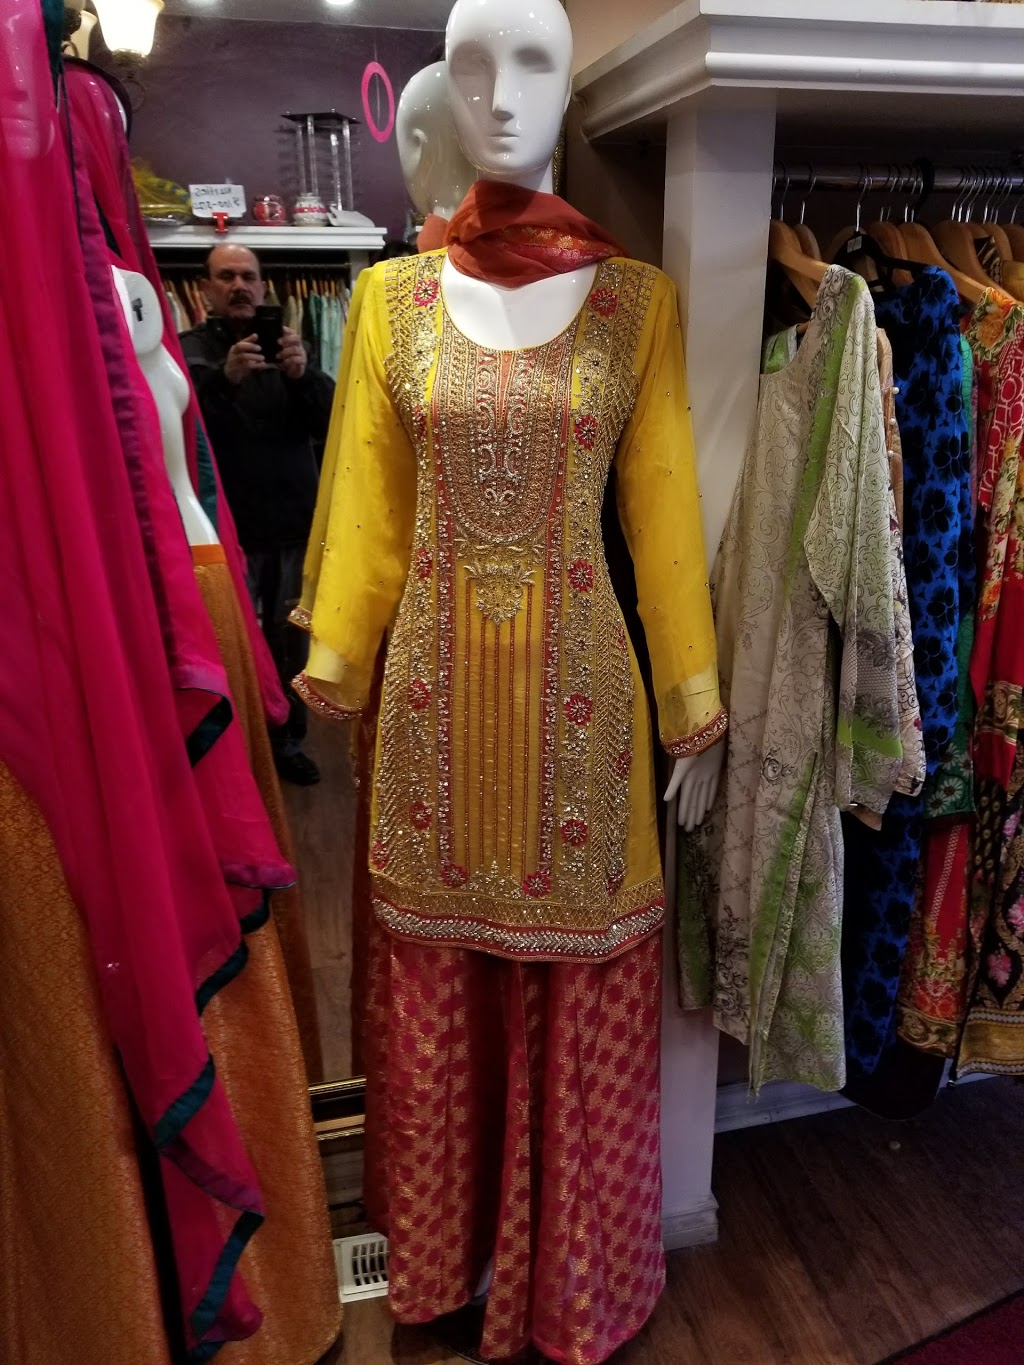 Kohinoor Haute Couture | clothing store | 2623 Islington Ave, Etobicoke, ON M9V 2X4, Canada | 6473520195 OR +1 647-352-0195